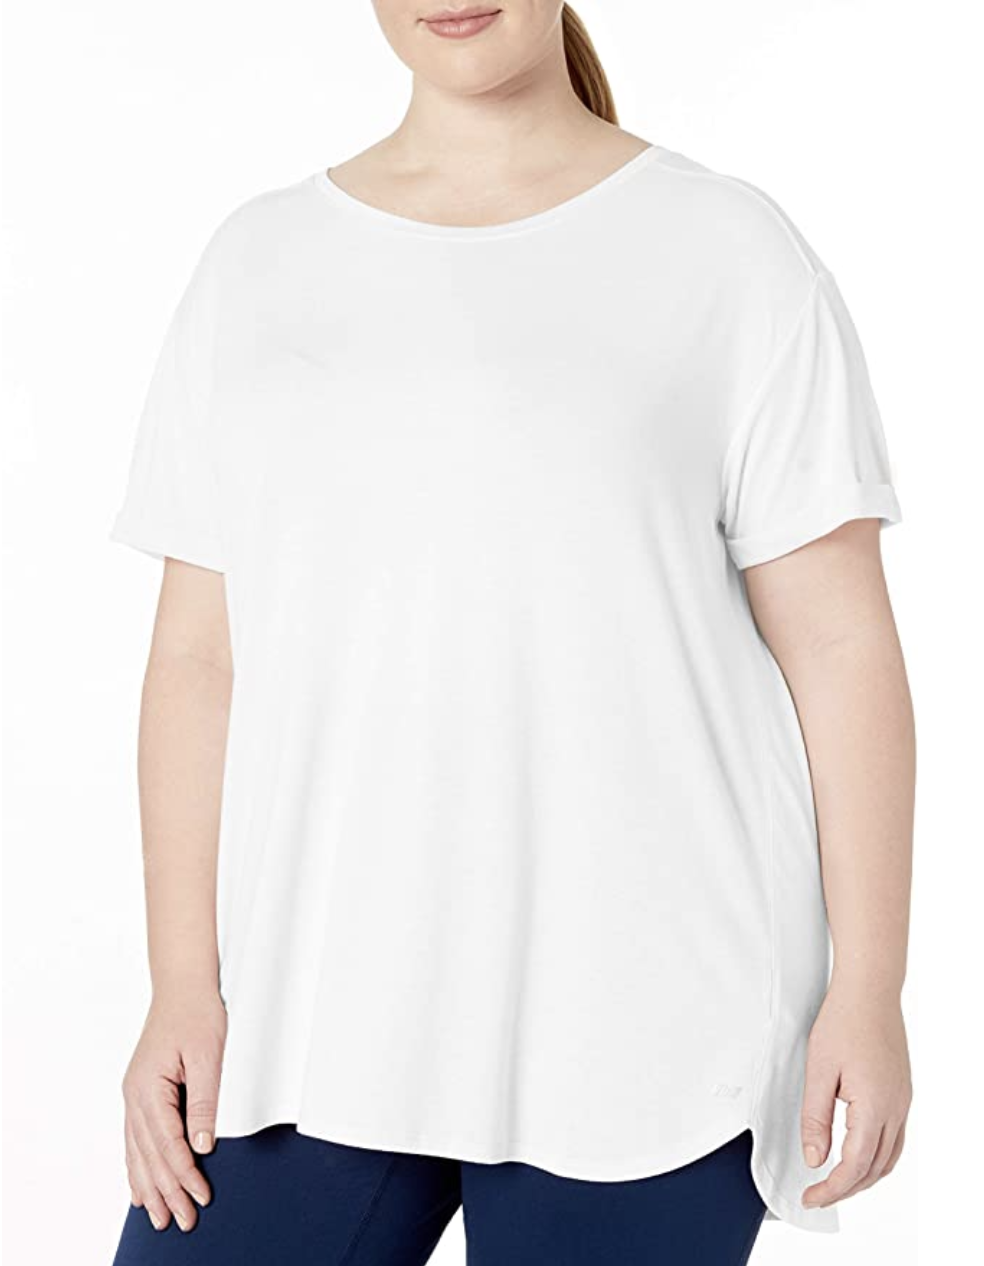 A model in the white t-shirt